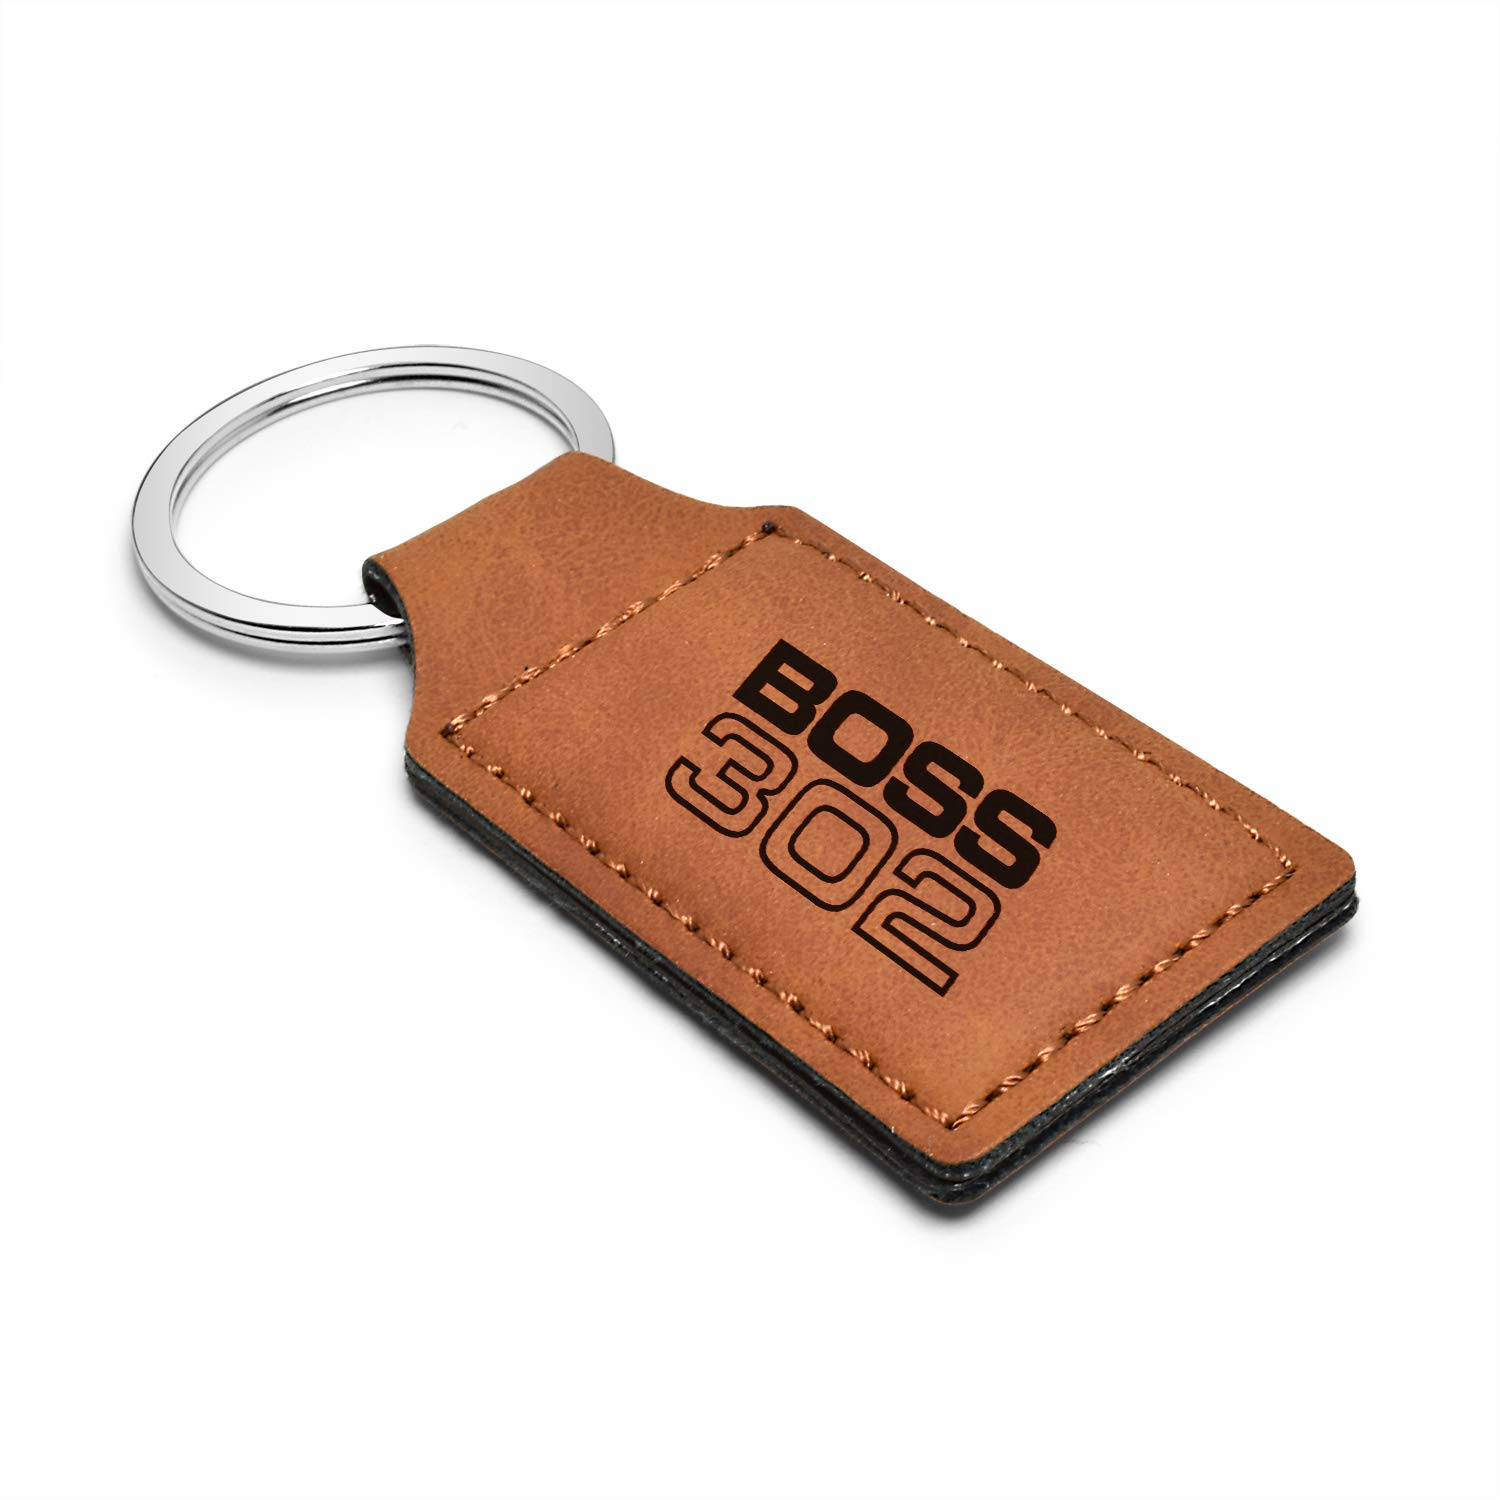 Mustang Boss 302 iPick Image Ford Rectangular Brown Leather Key Chain